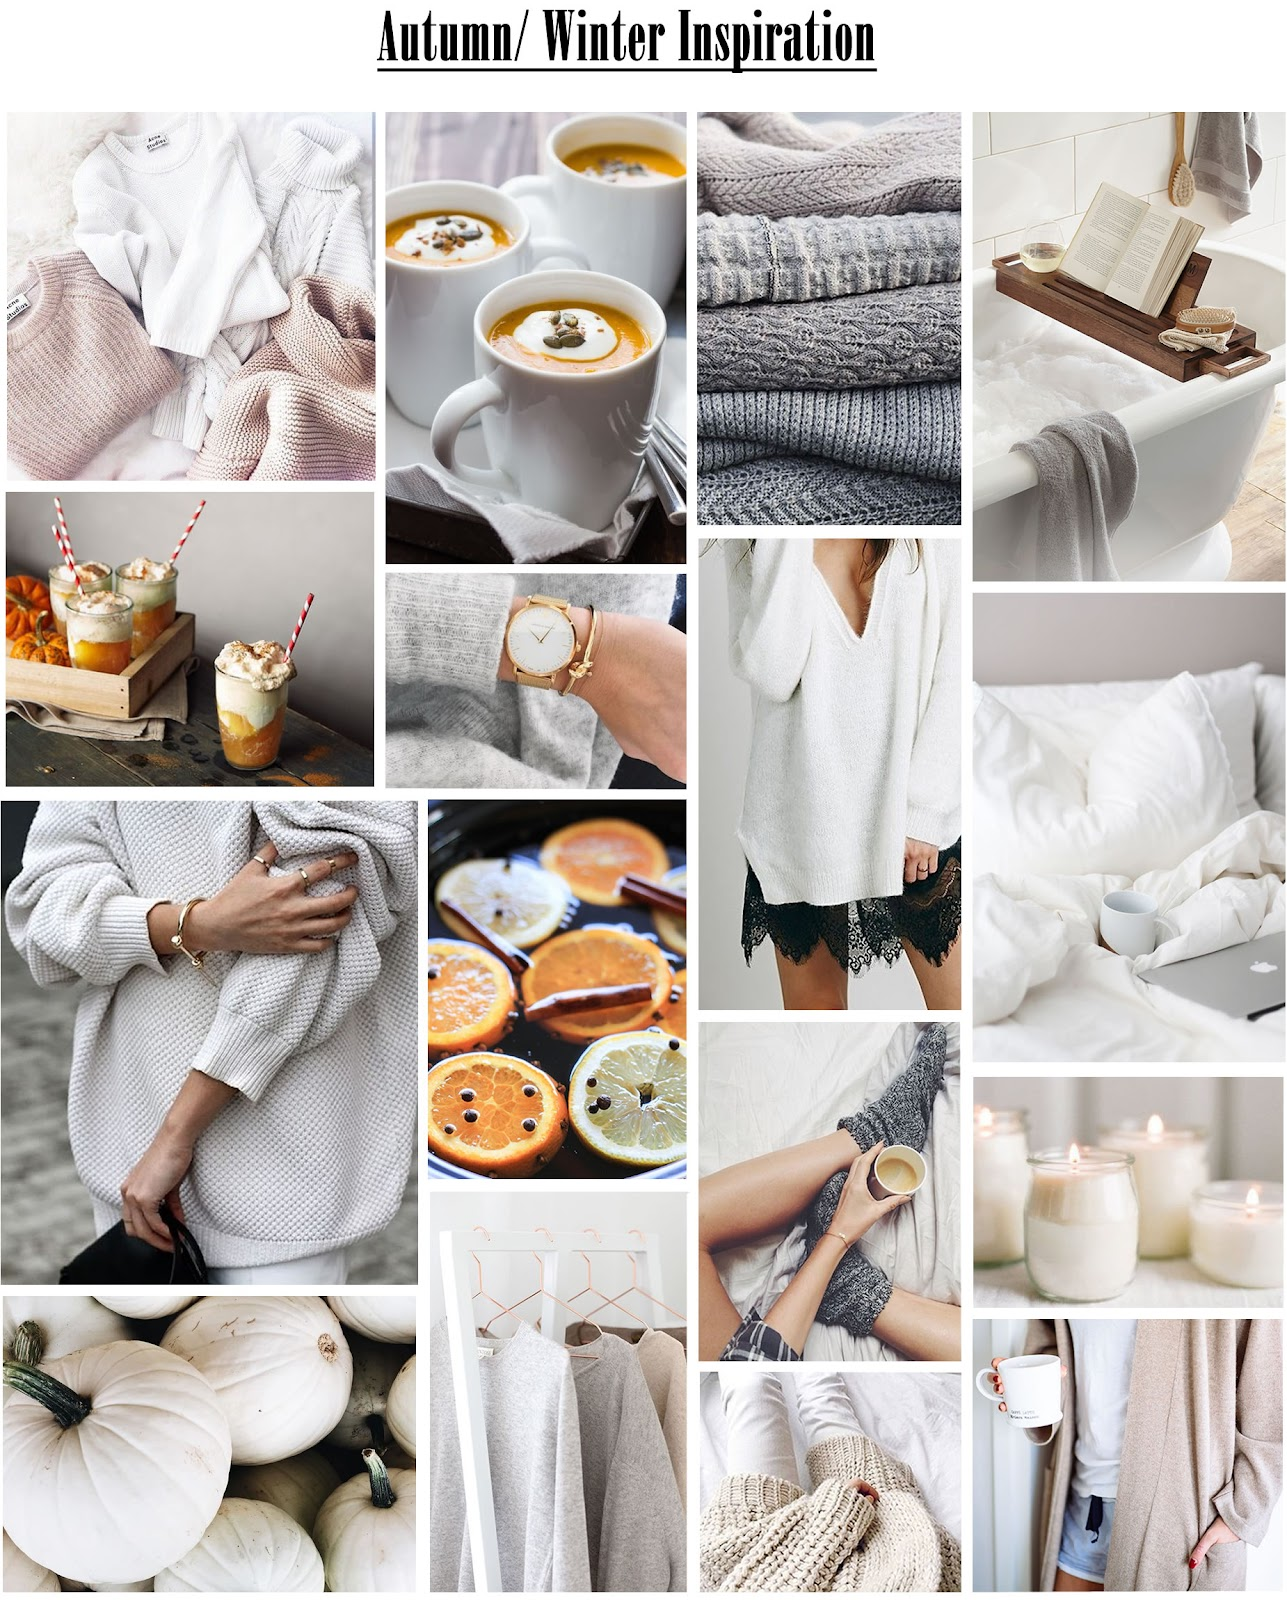 pinterest, winter, autumn, winter fashion, winter lifestyle, autumn fashion, autumn lifestyle, winter inspiration, winter inspo, autumn inspiration, autumn inspo, pins, cosy, scarfs, relaxing, warm, hot, pumpkins, beauty blogger, lifestyle blogger, fashion blogger, british blogger